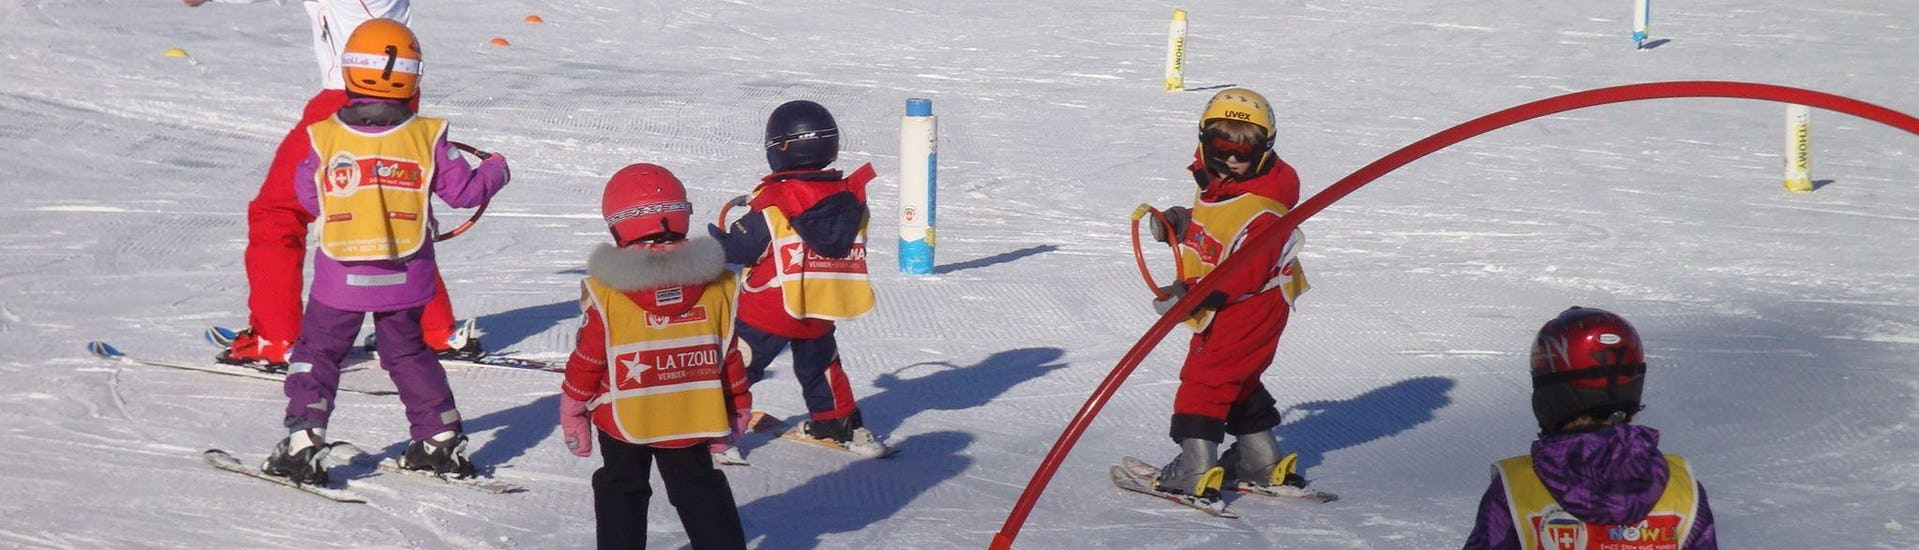 """Kids are learning the basics of skiing thanks to games in the safety of the snowgarden during their Kids Ski Lessons """"Snowgarden"""" (3-6 years) - Morning with the Swiss Ski School La Tzoumaz."""